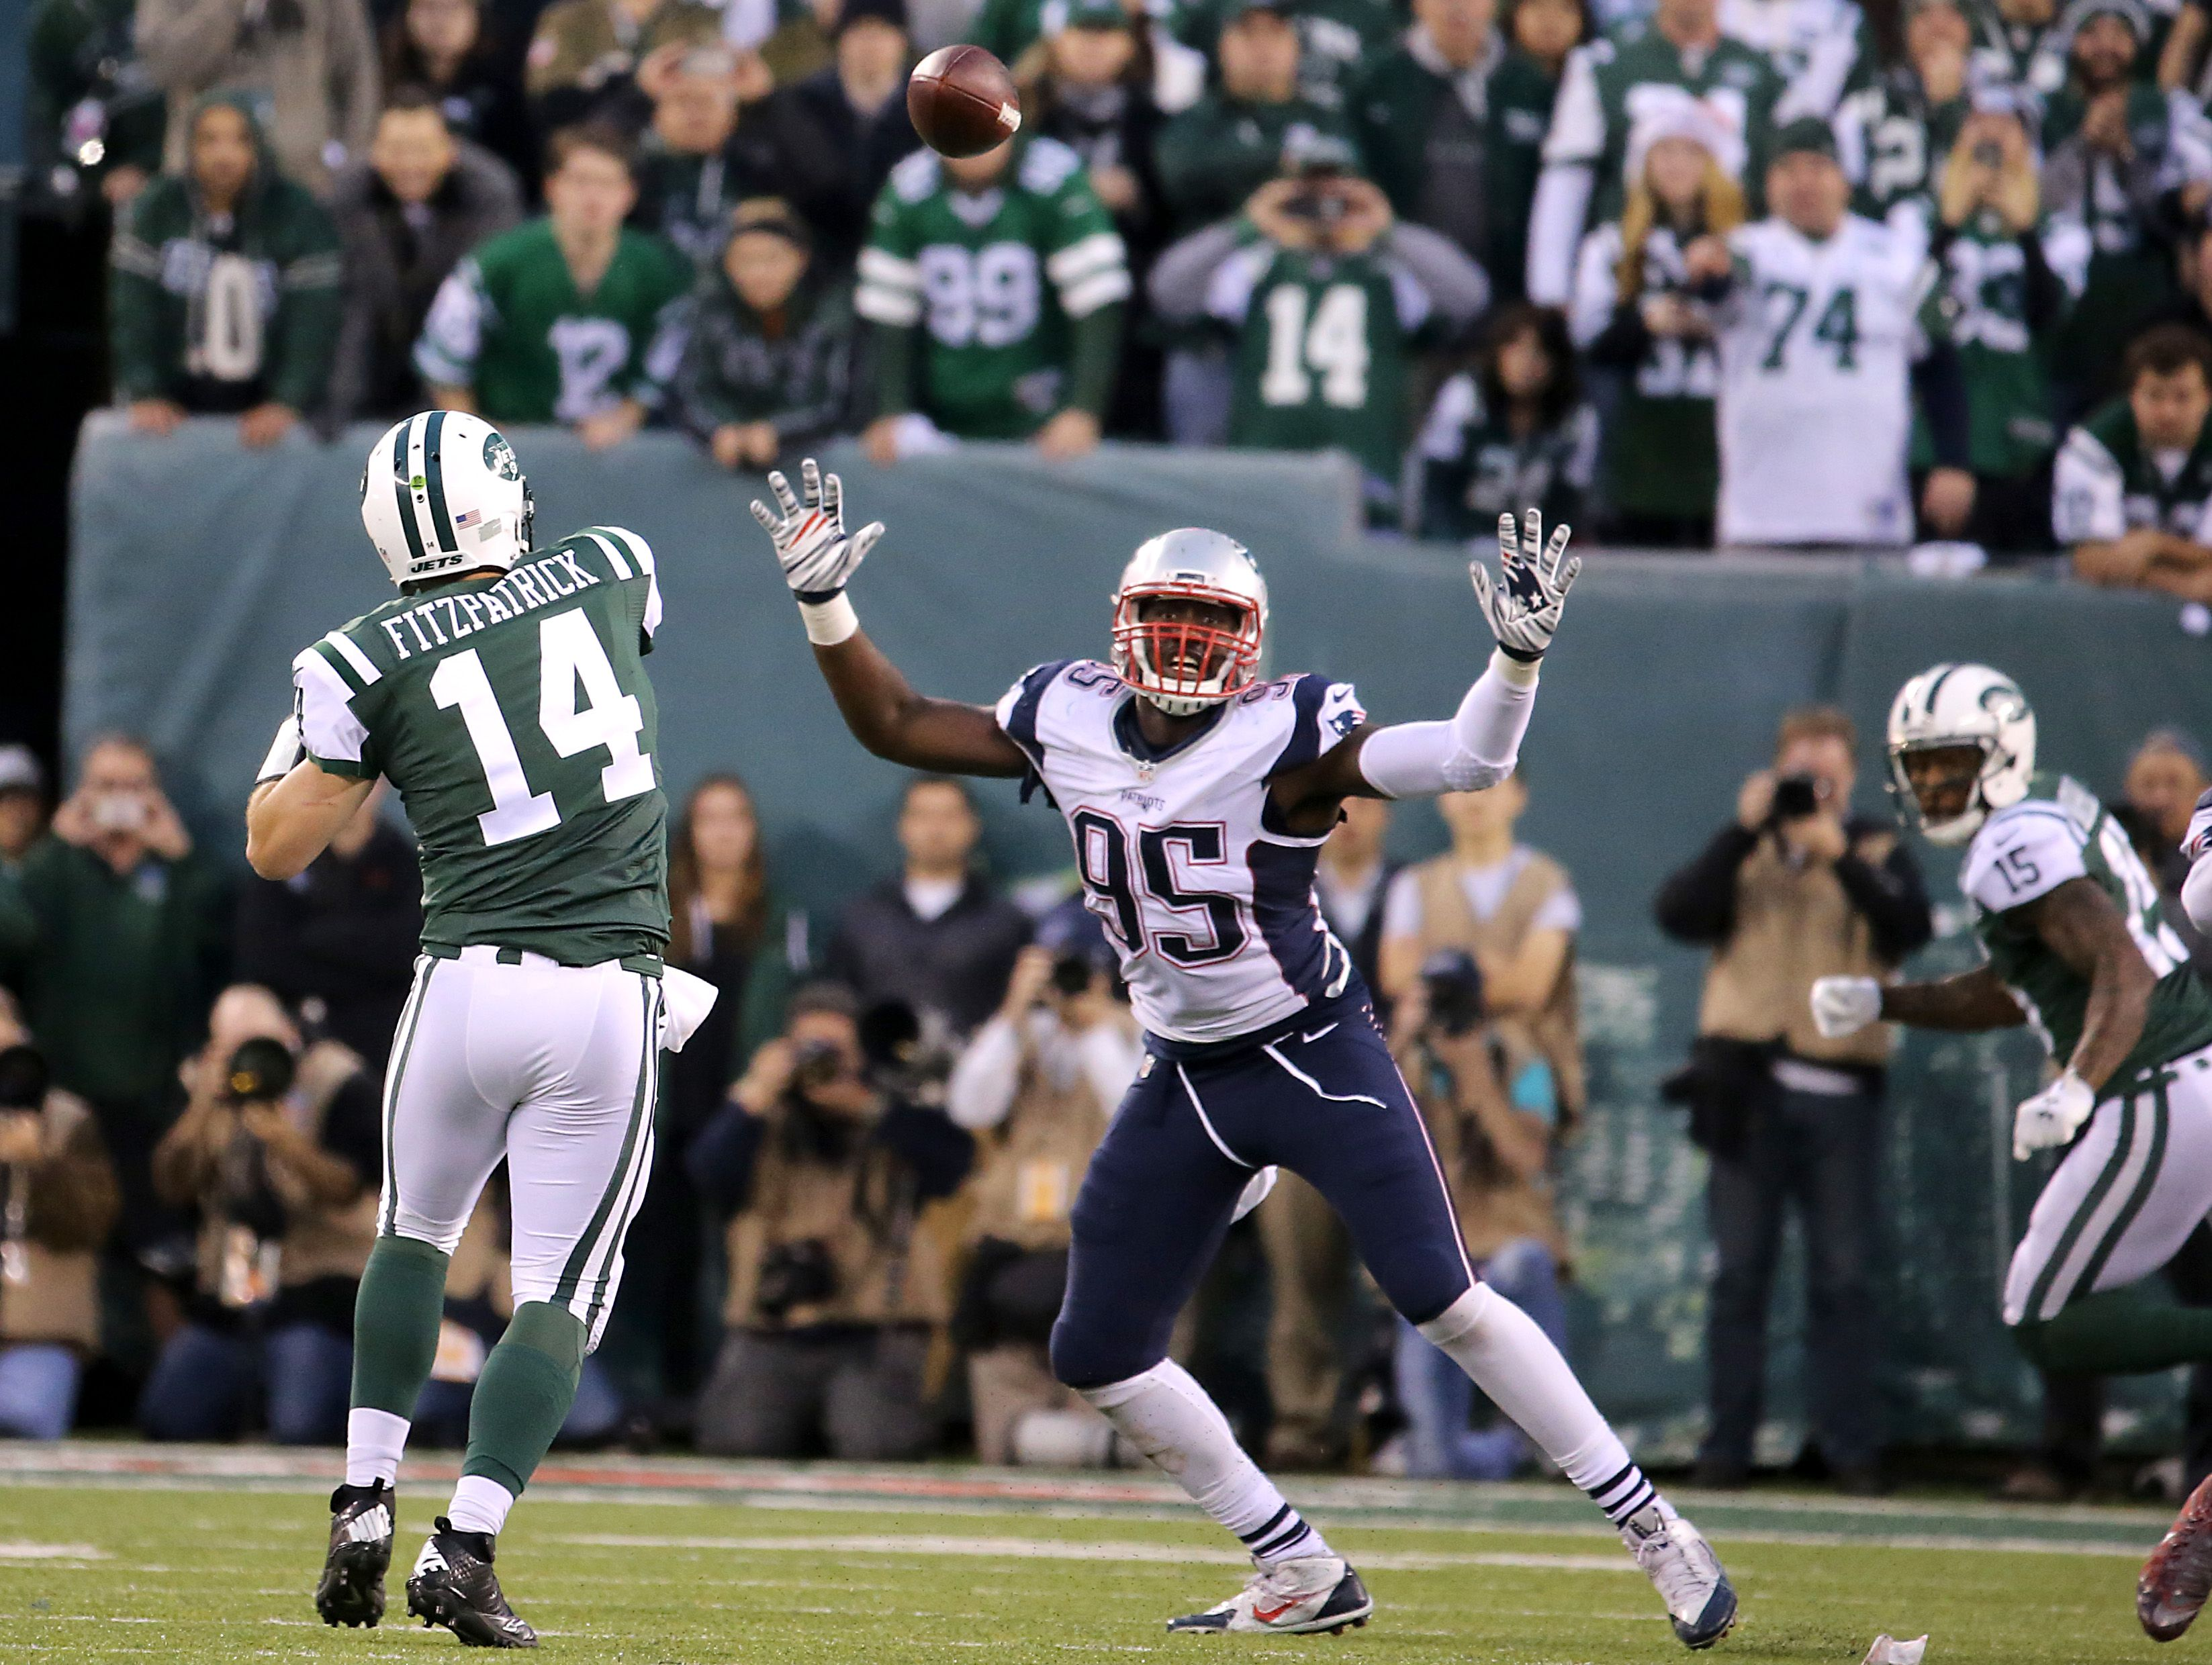 a4a0e22ac Chandler Jones, Dont'a Hightower ruled out vs. Miami - The Boston Globe